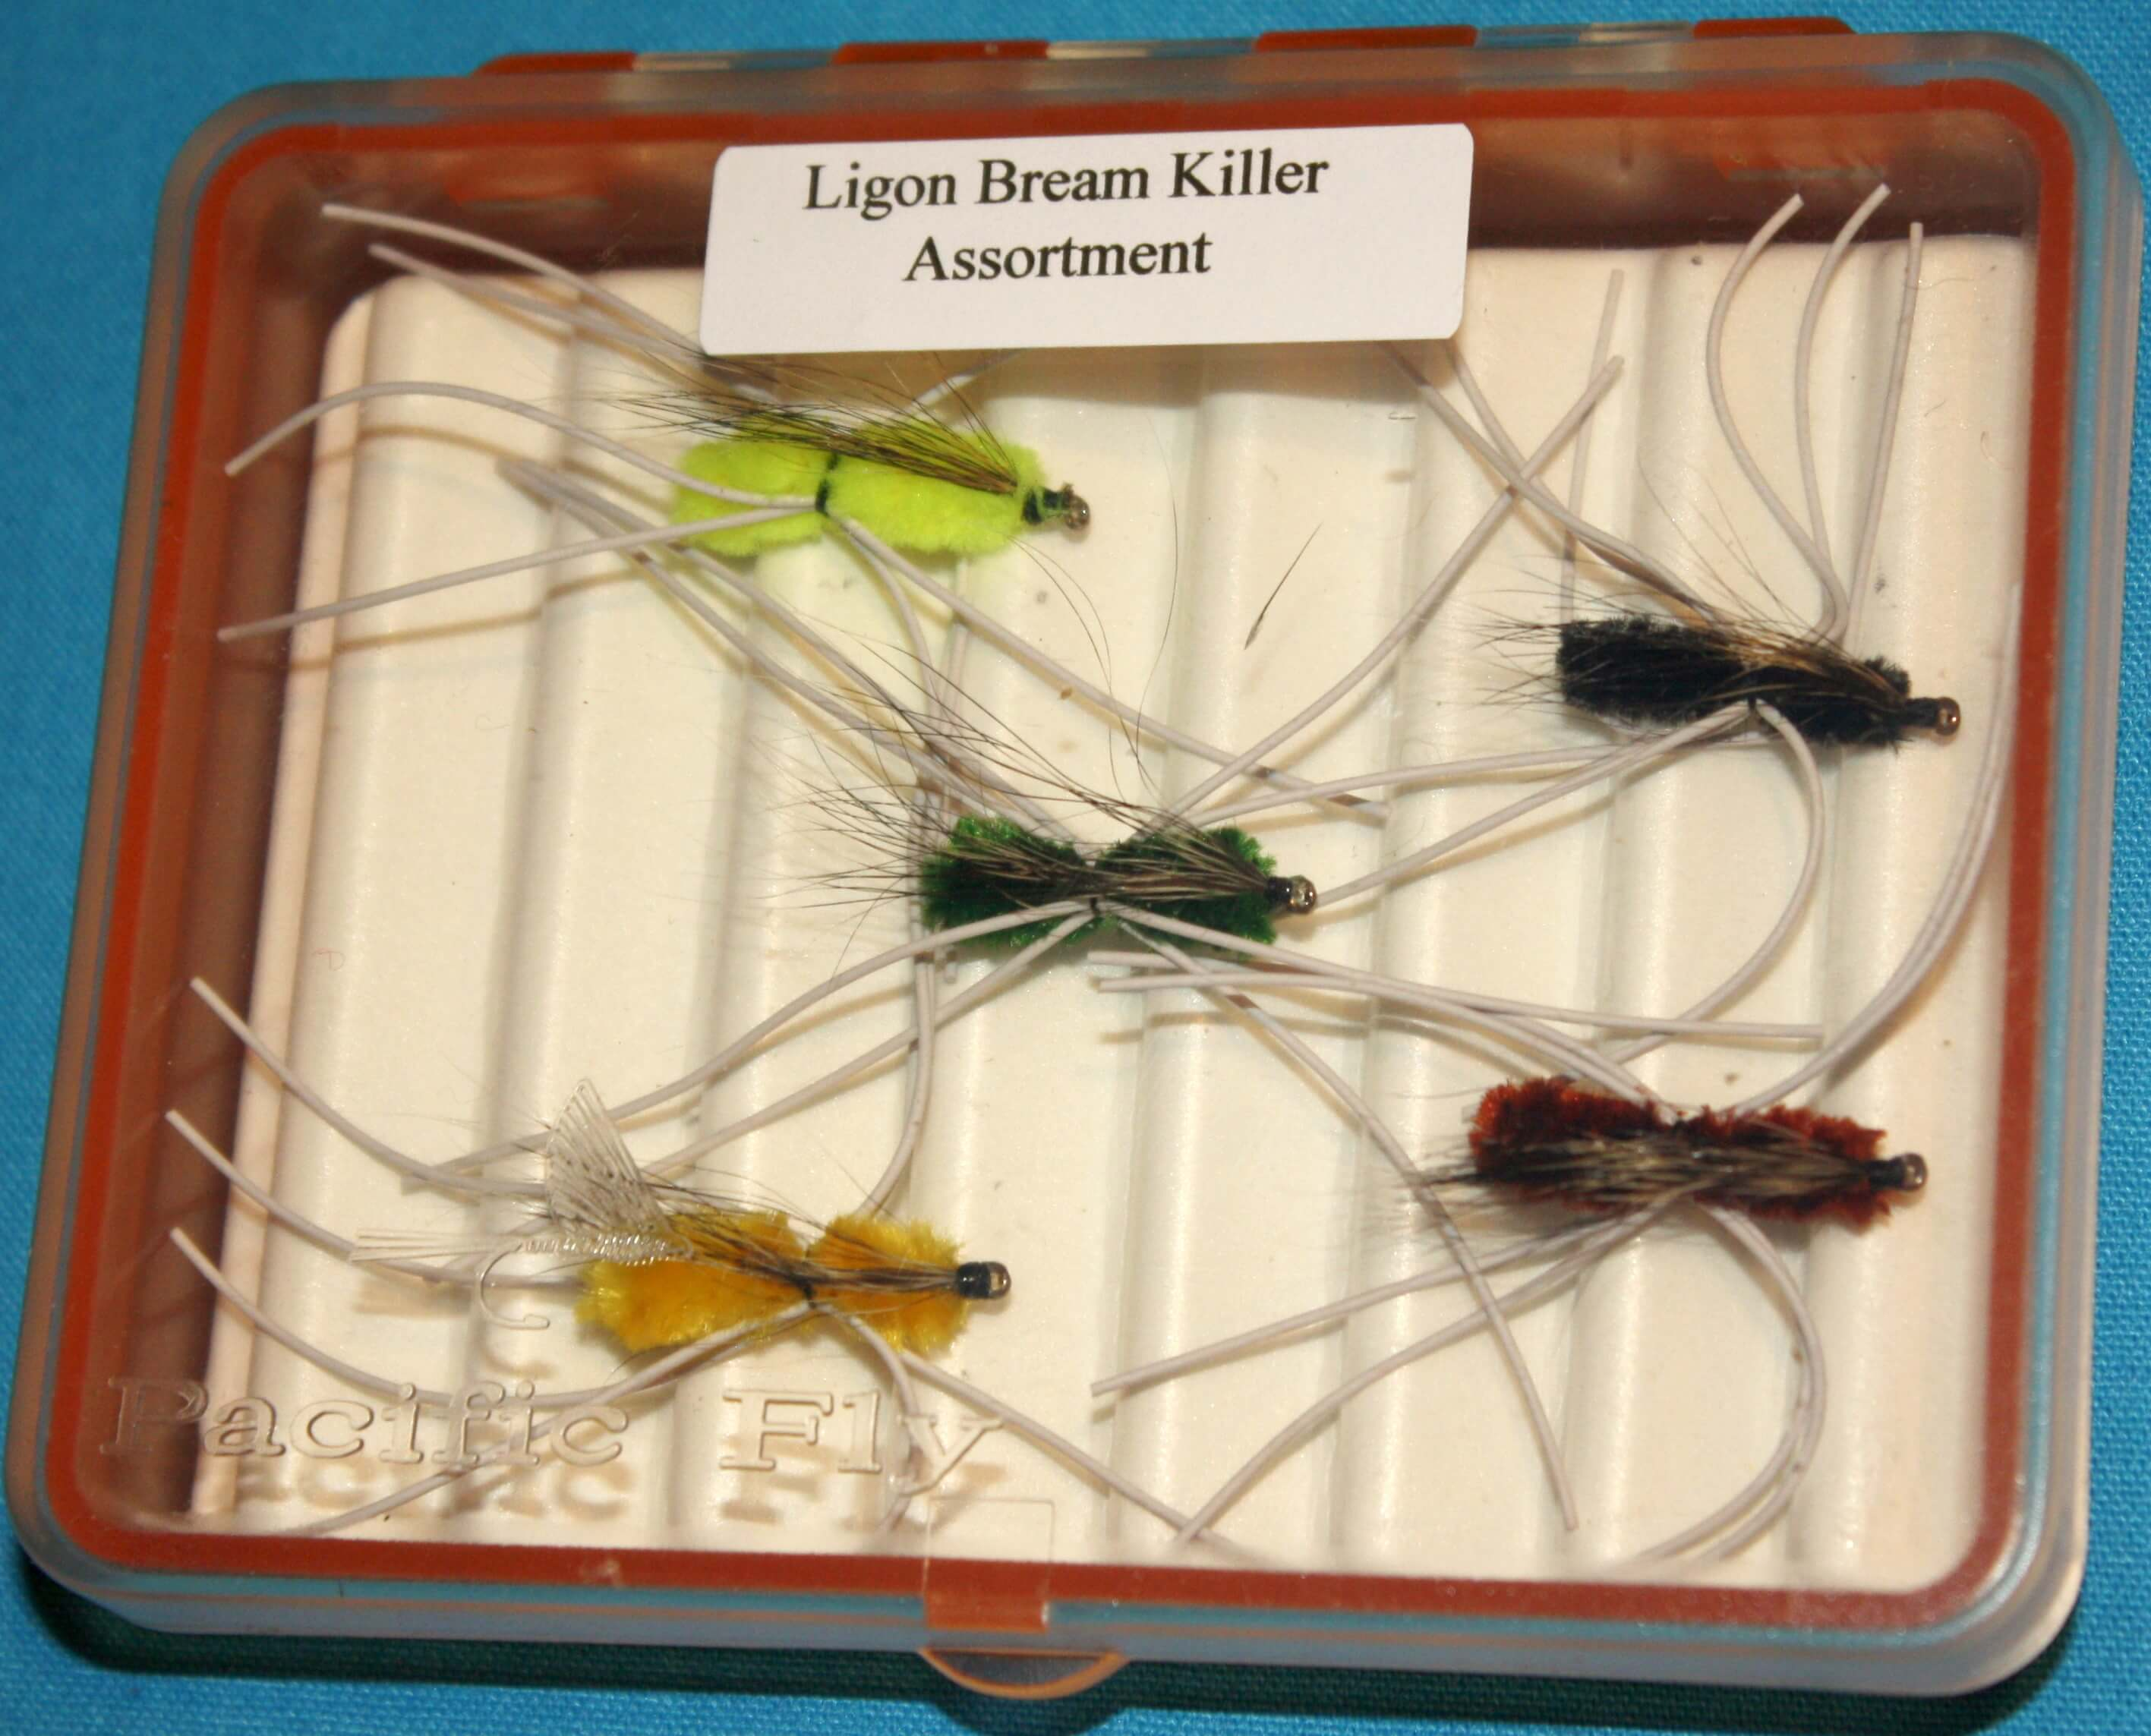 Ligon Bream Killer Assortment